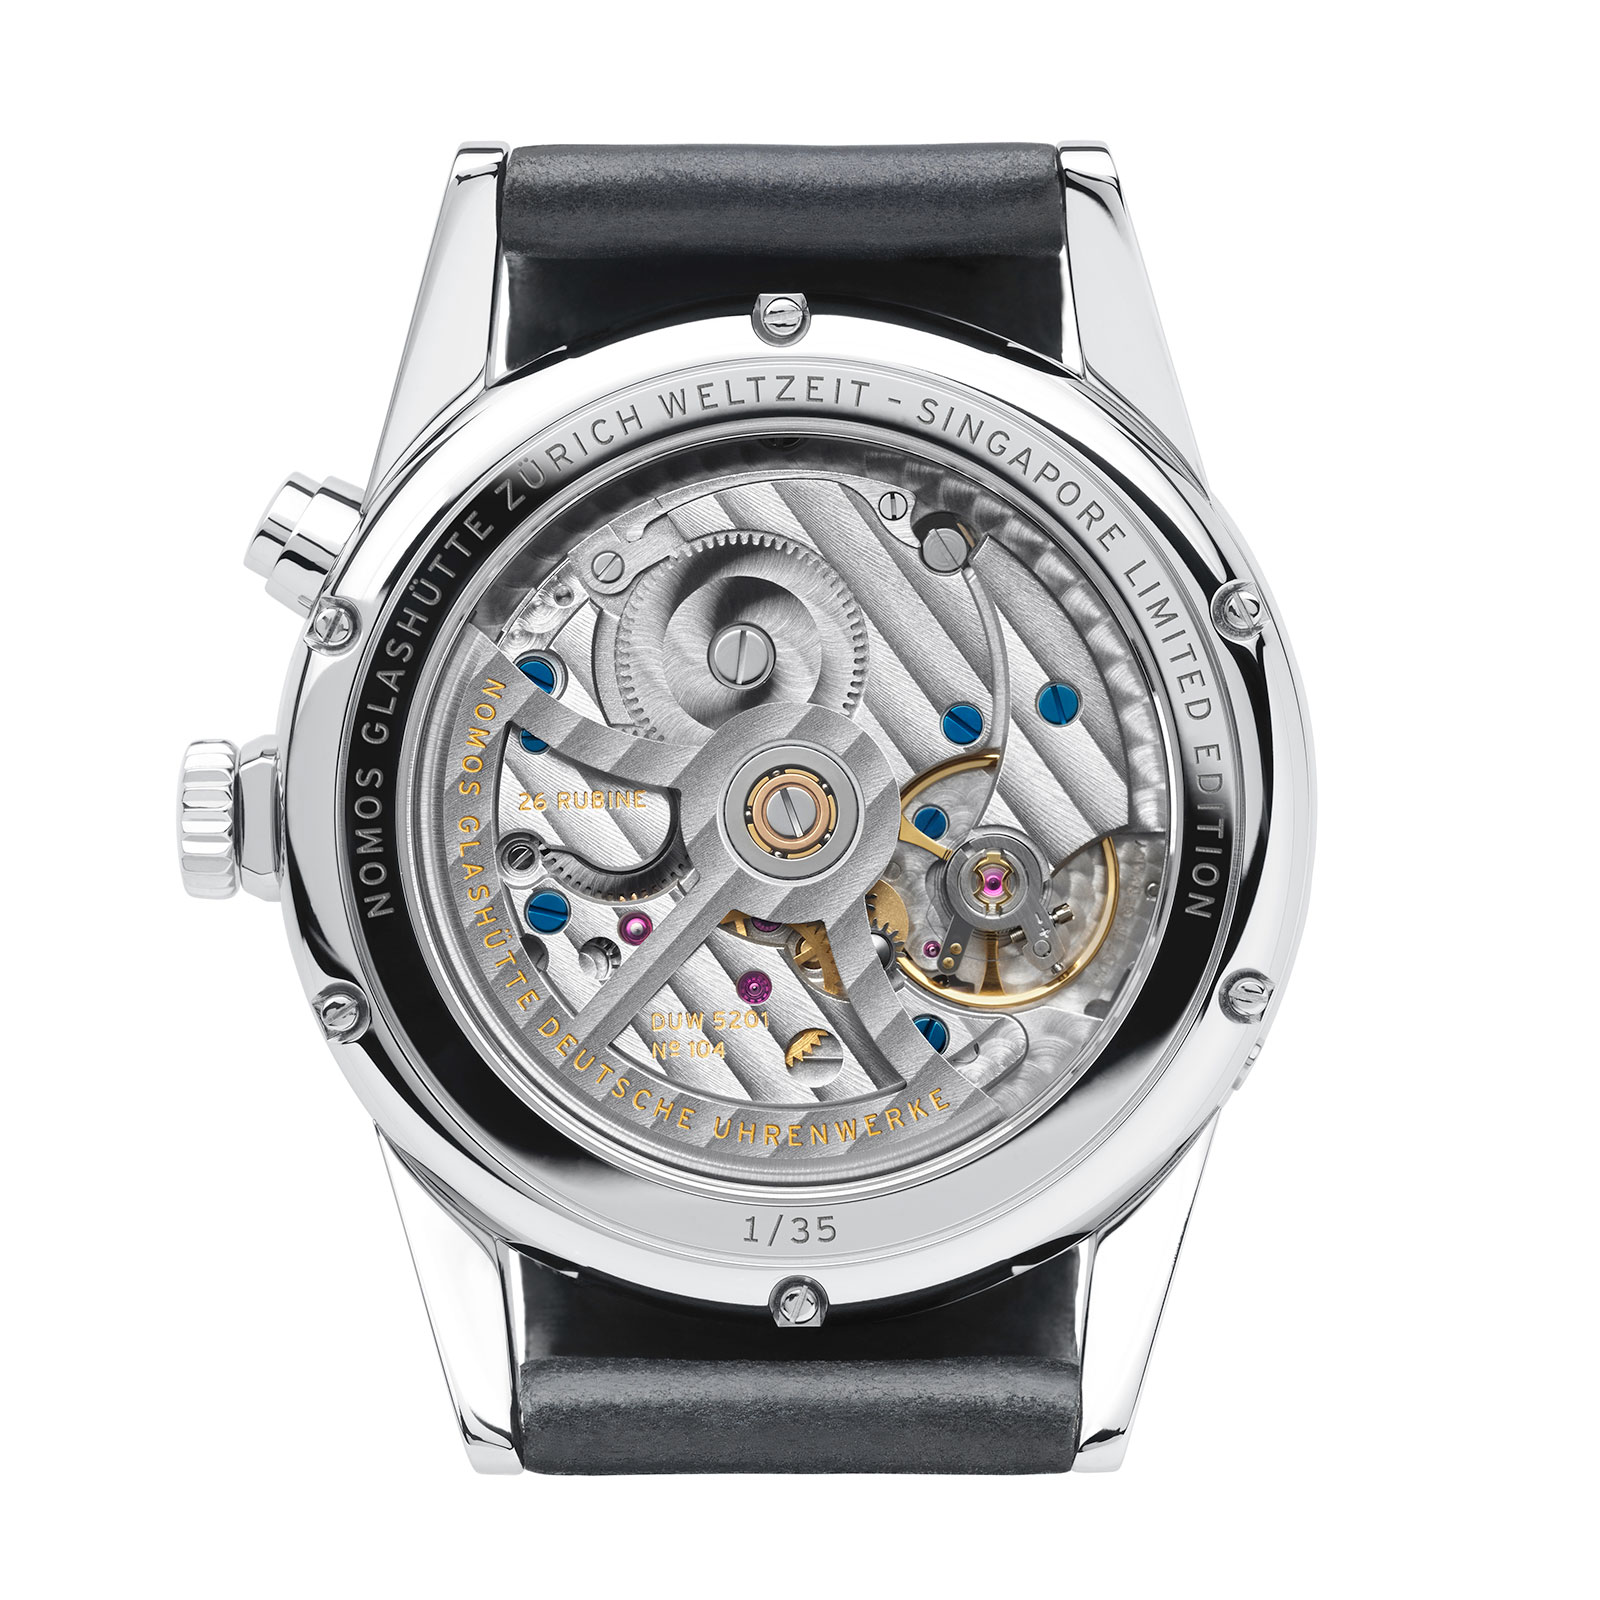 Nomos Zurich singapore Hour Glass